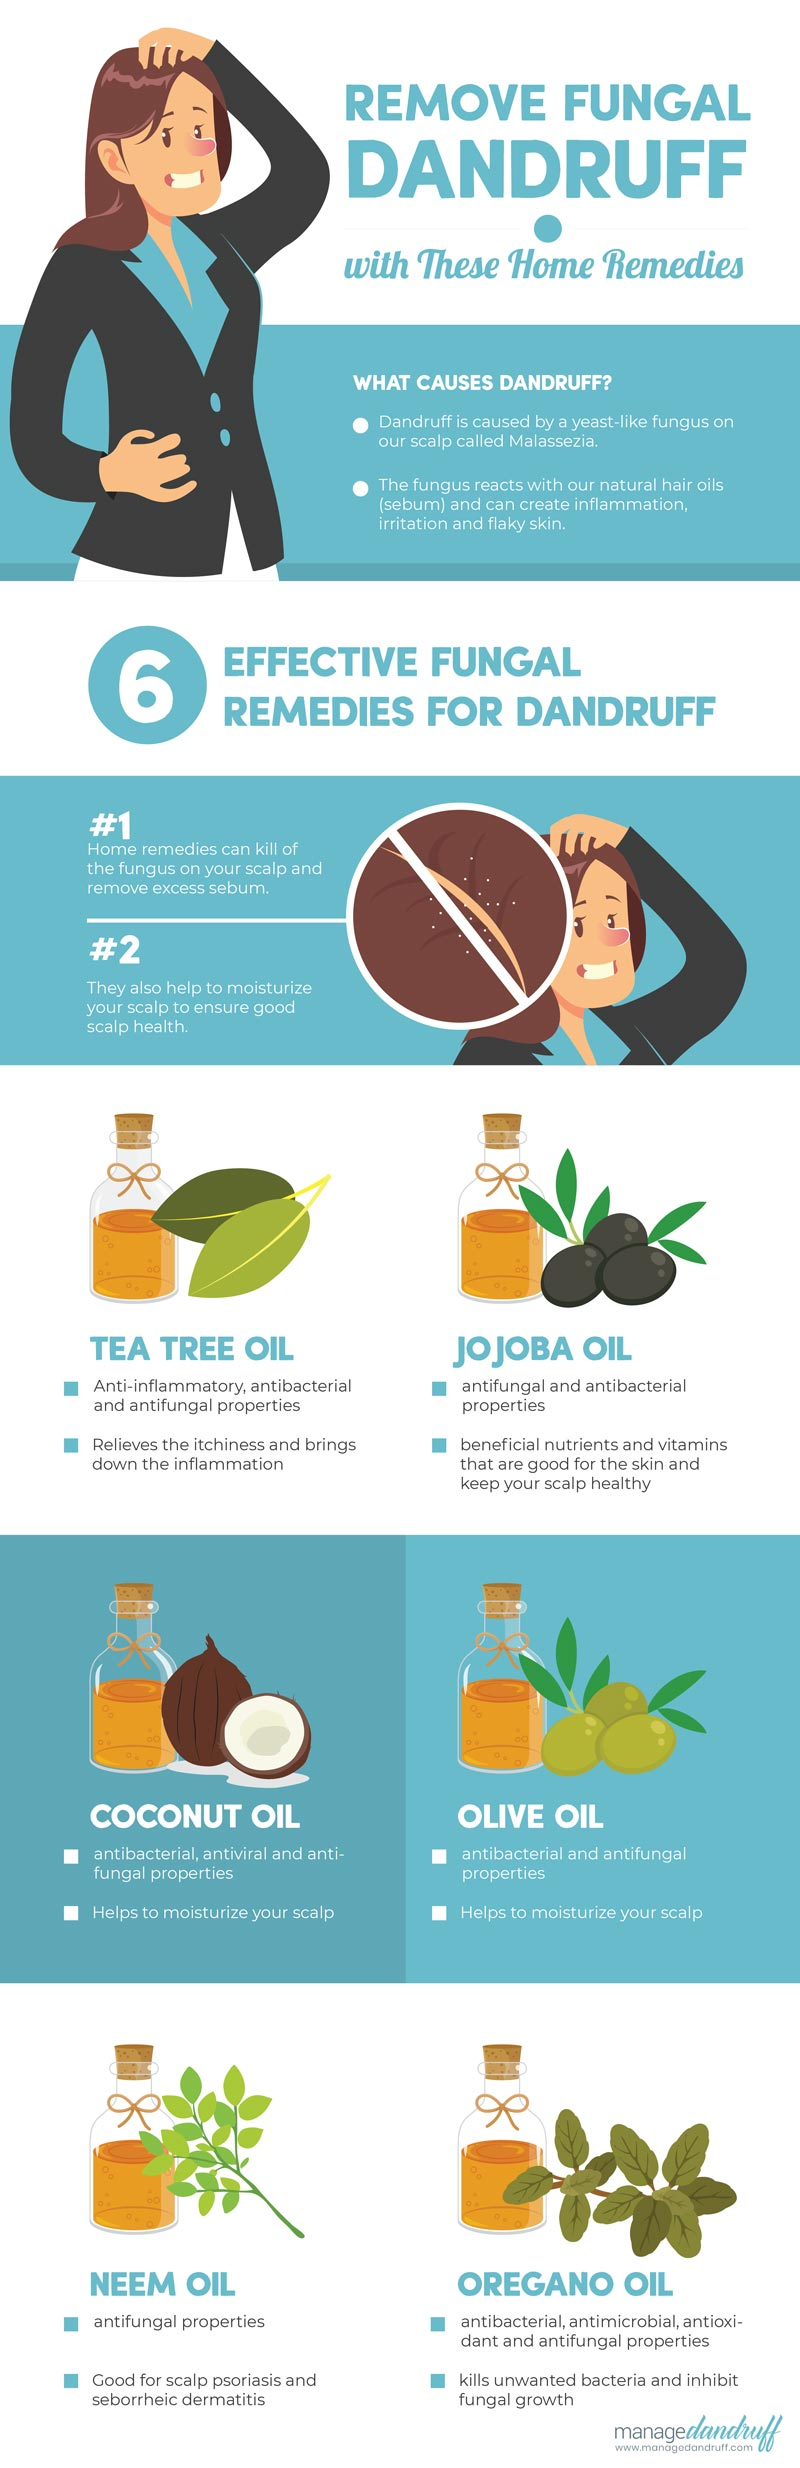 Home Remedies for fungal dandruff infographic